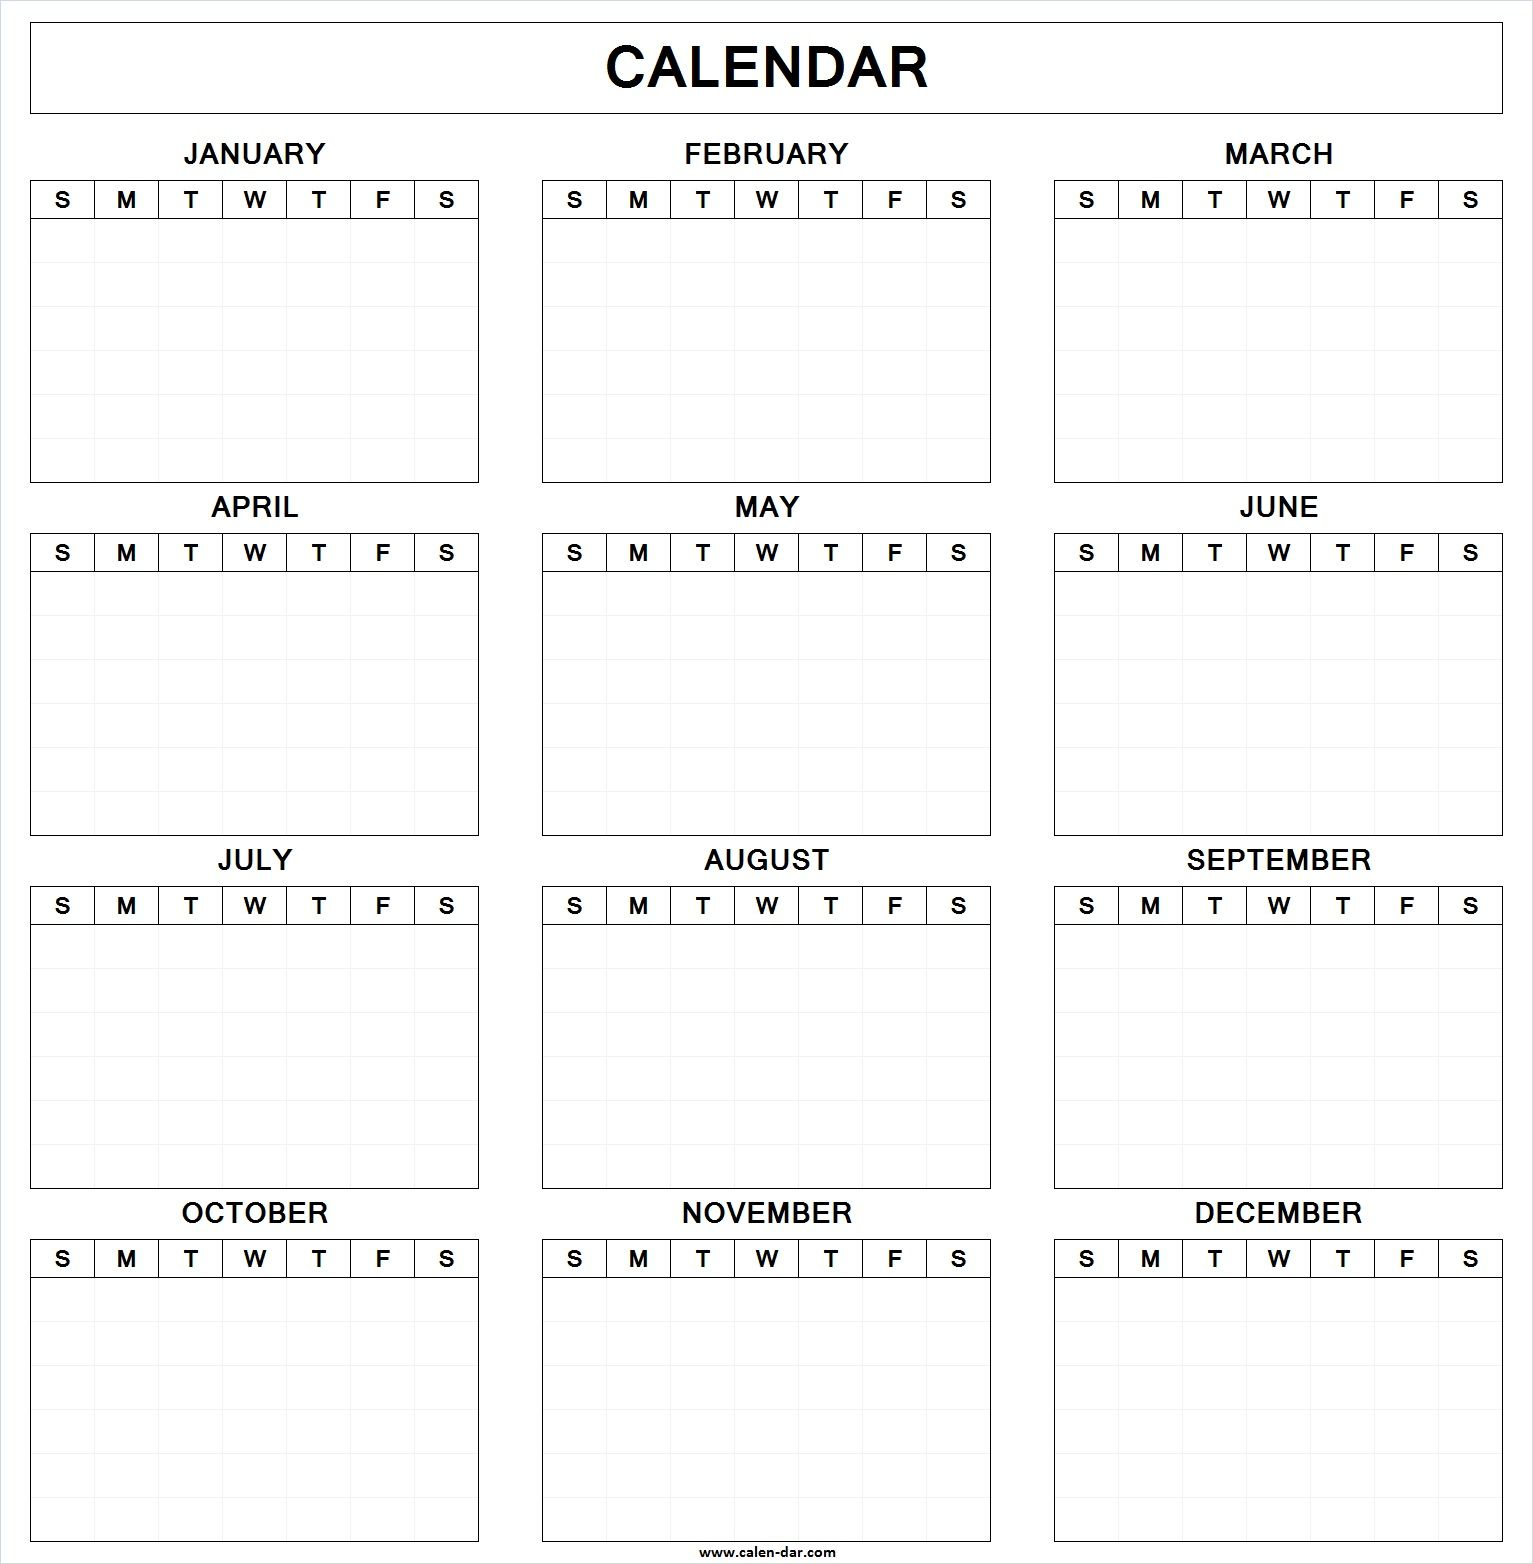 Blank Yearly Calendar Template 2018 | Home decor | Pinterest